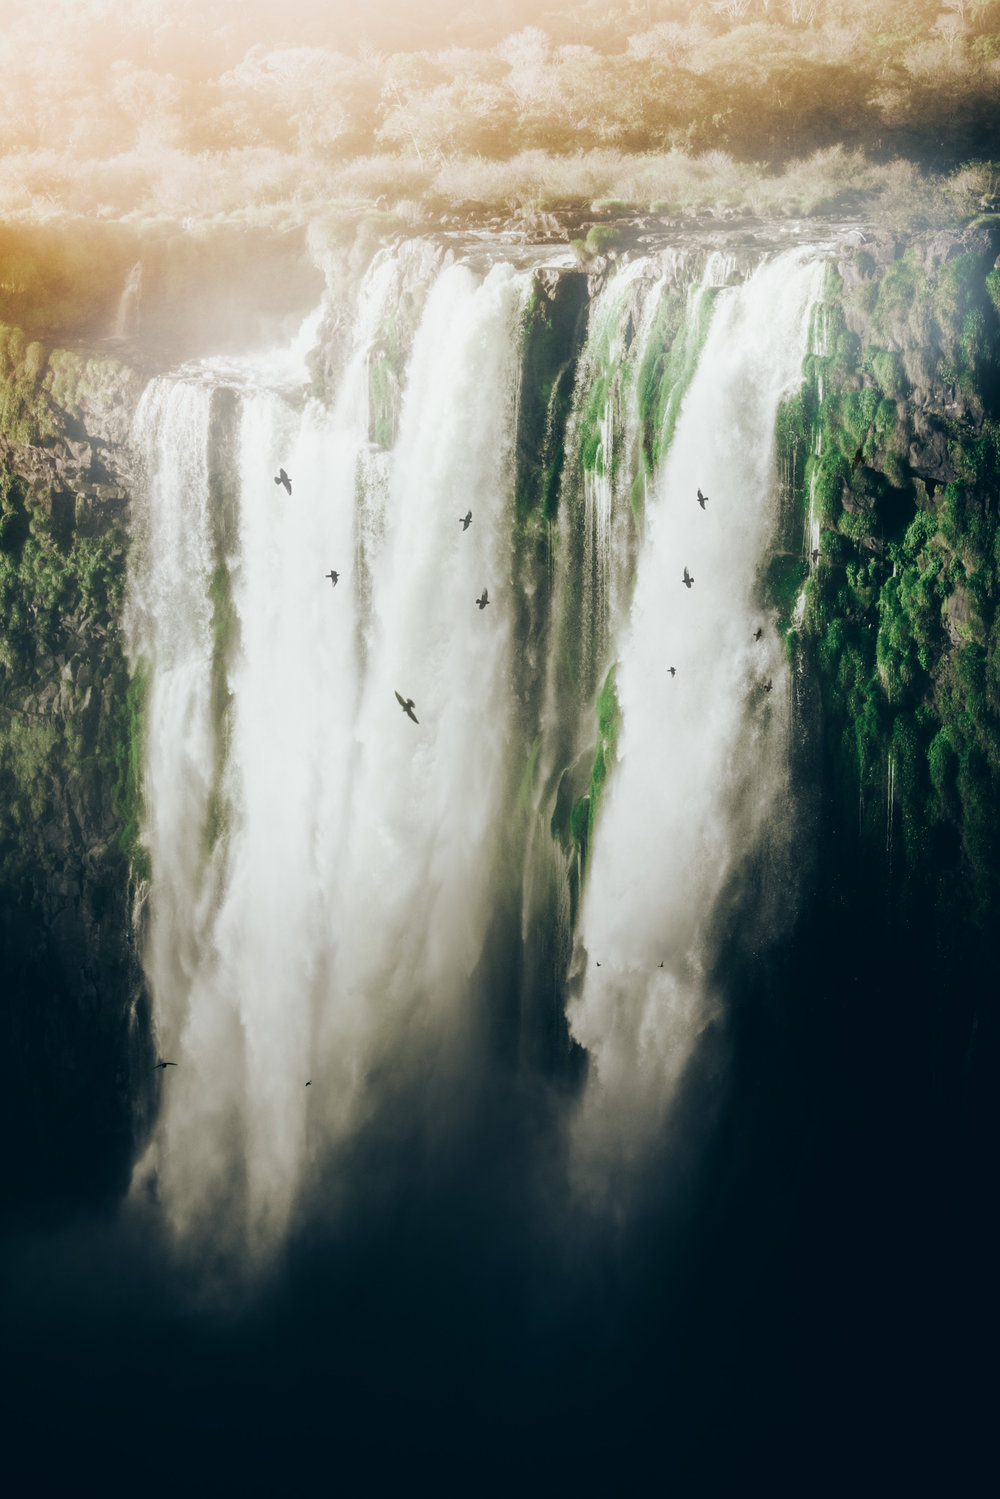 Iguazu Falls, Argentina. 70mm lens. Without birds, this image would appear relatively flat. They emphasize the height of this incredible waterfall.